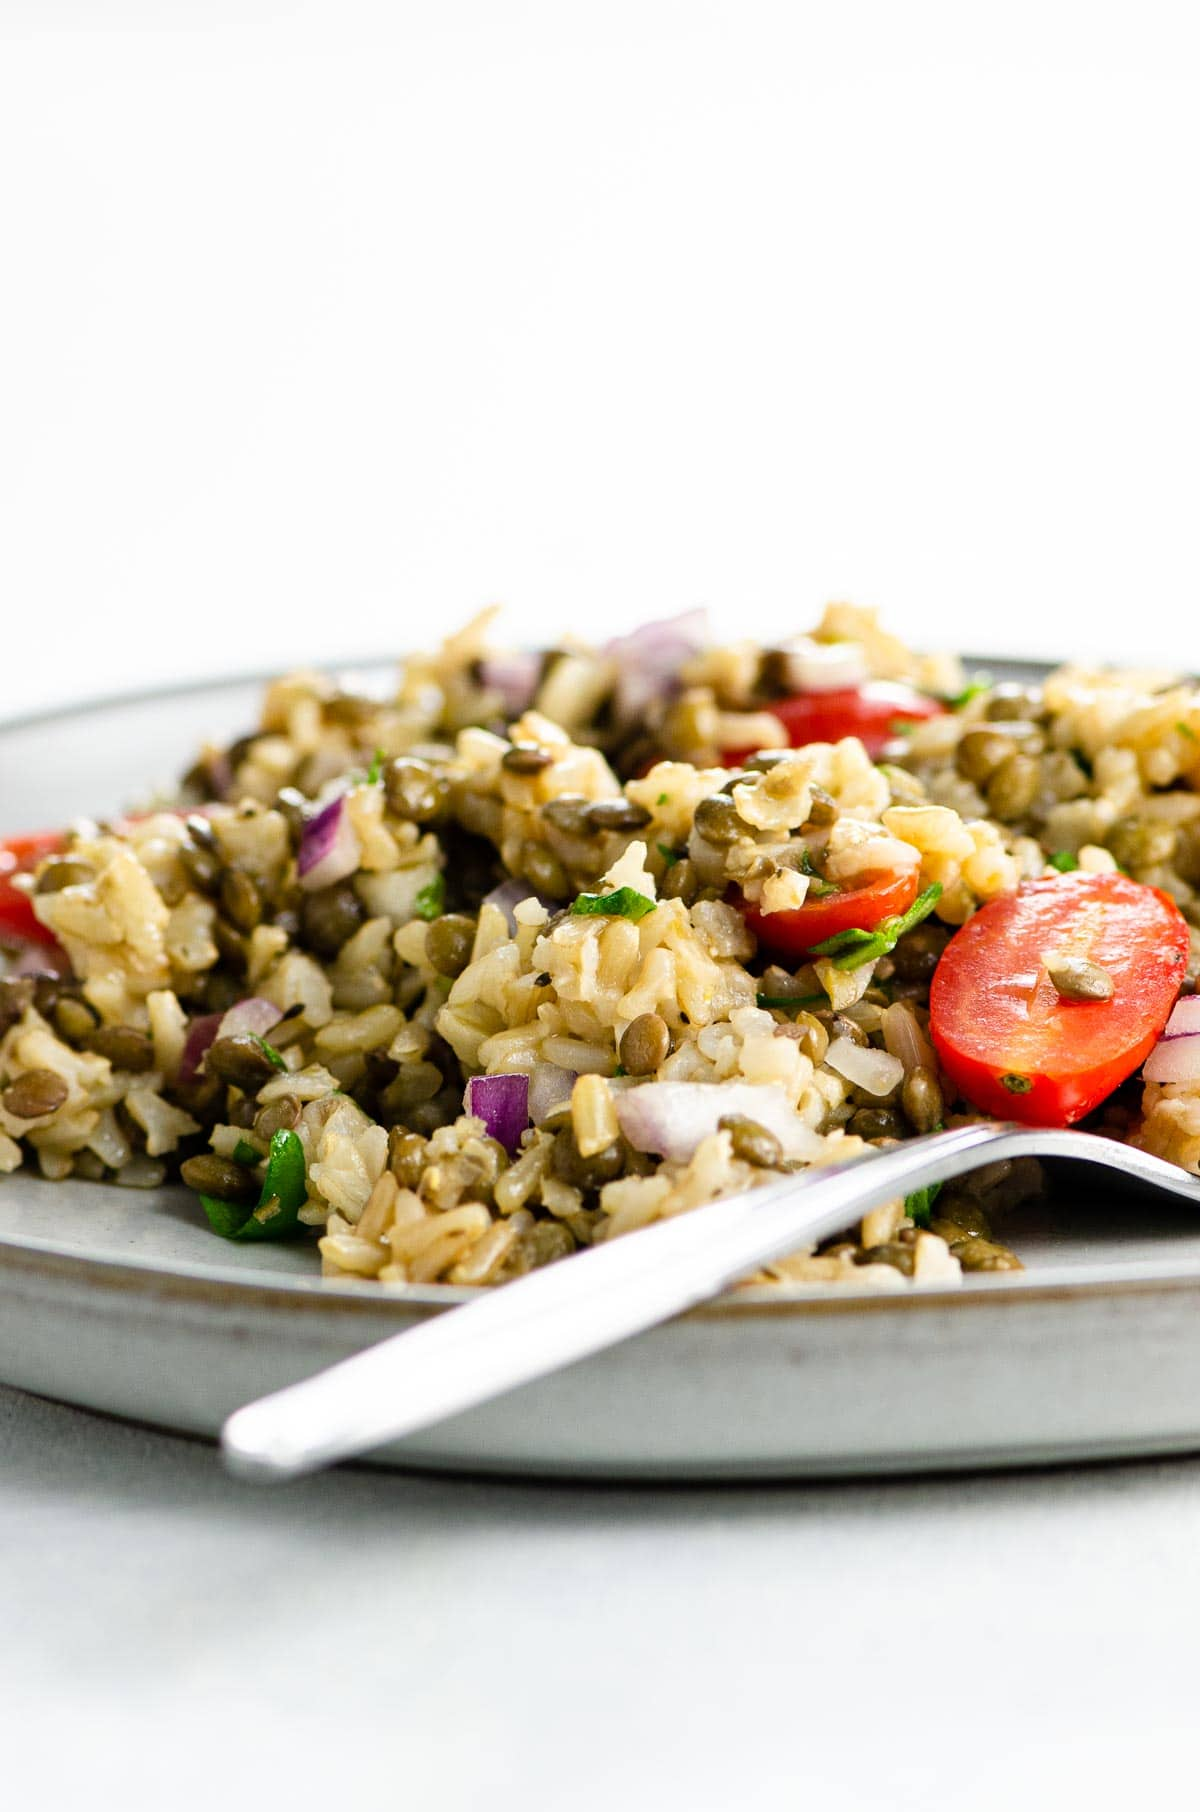 rice and lentils salad